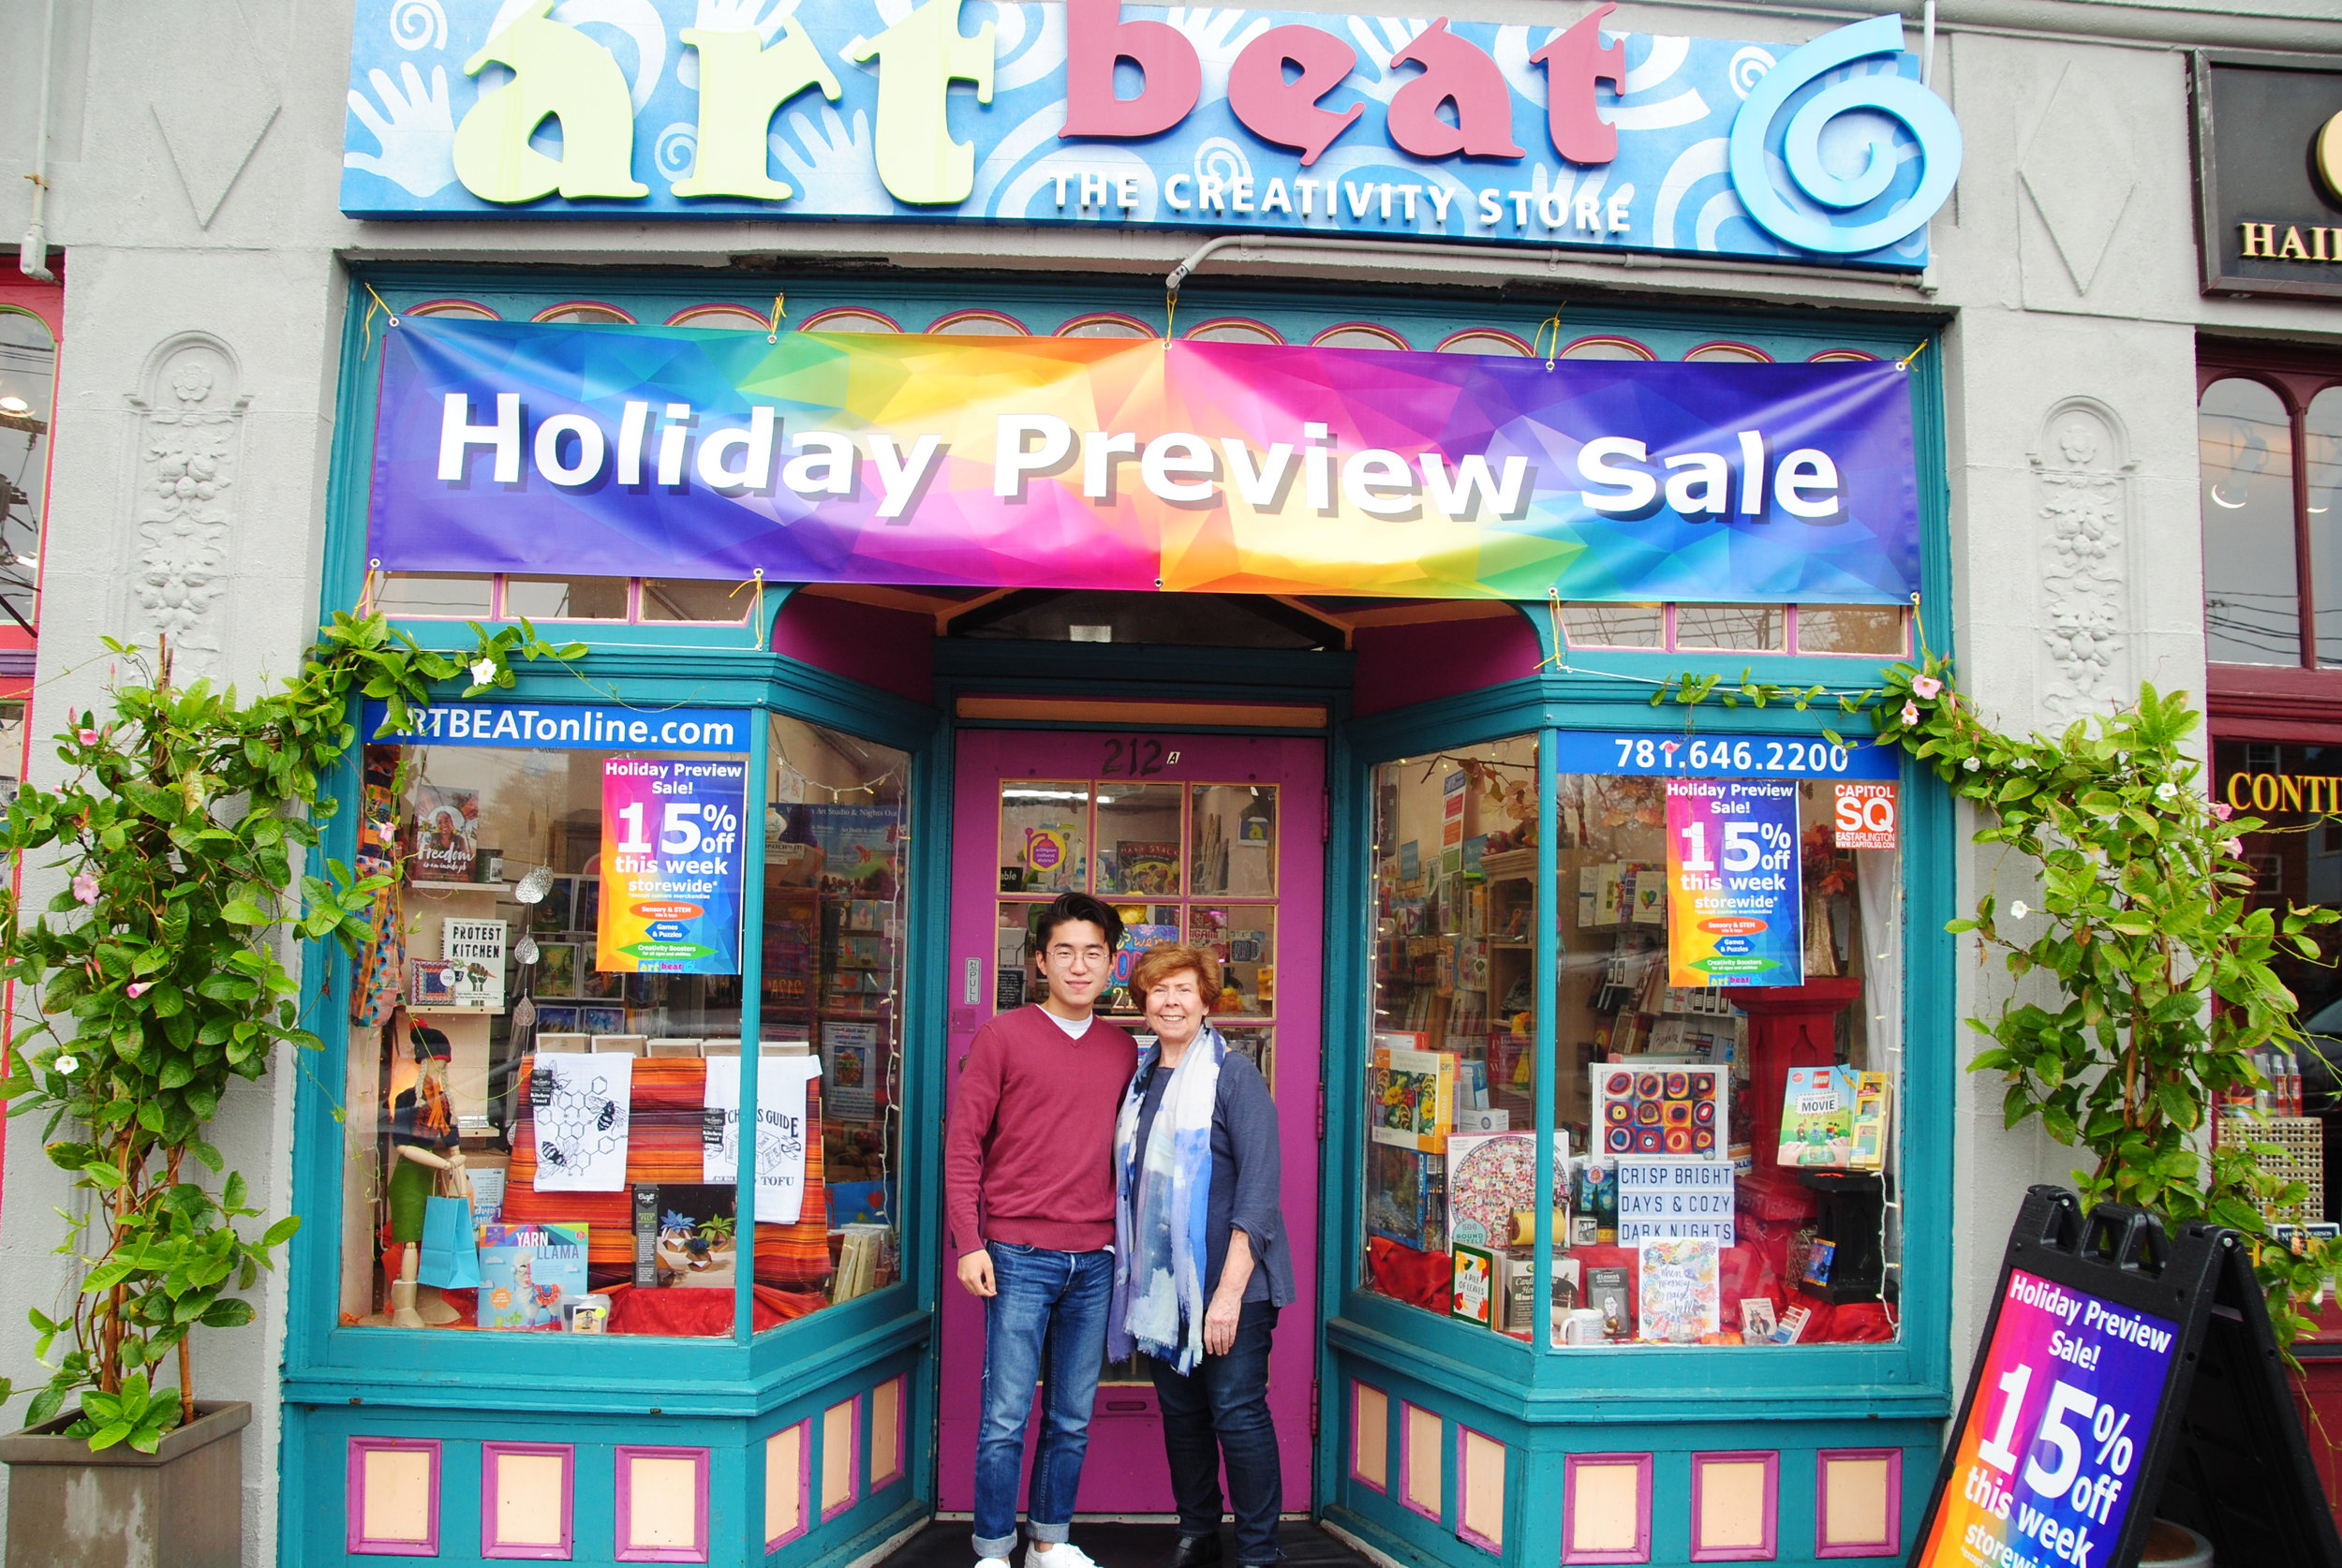 Thomas Kim | Student from Concord MA and Jan Whitted | Owner of Art Beat